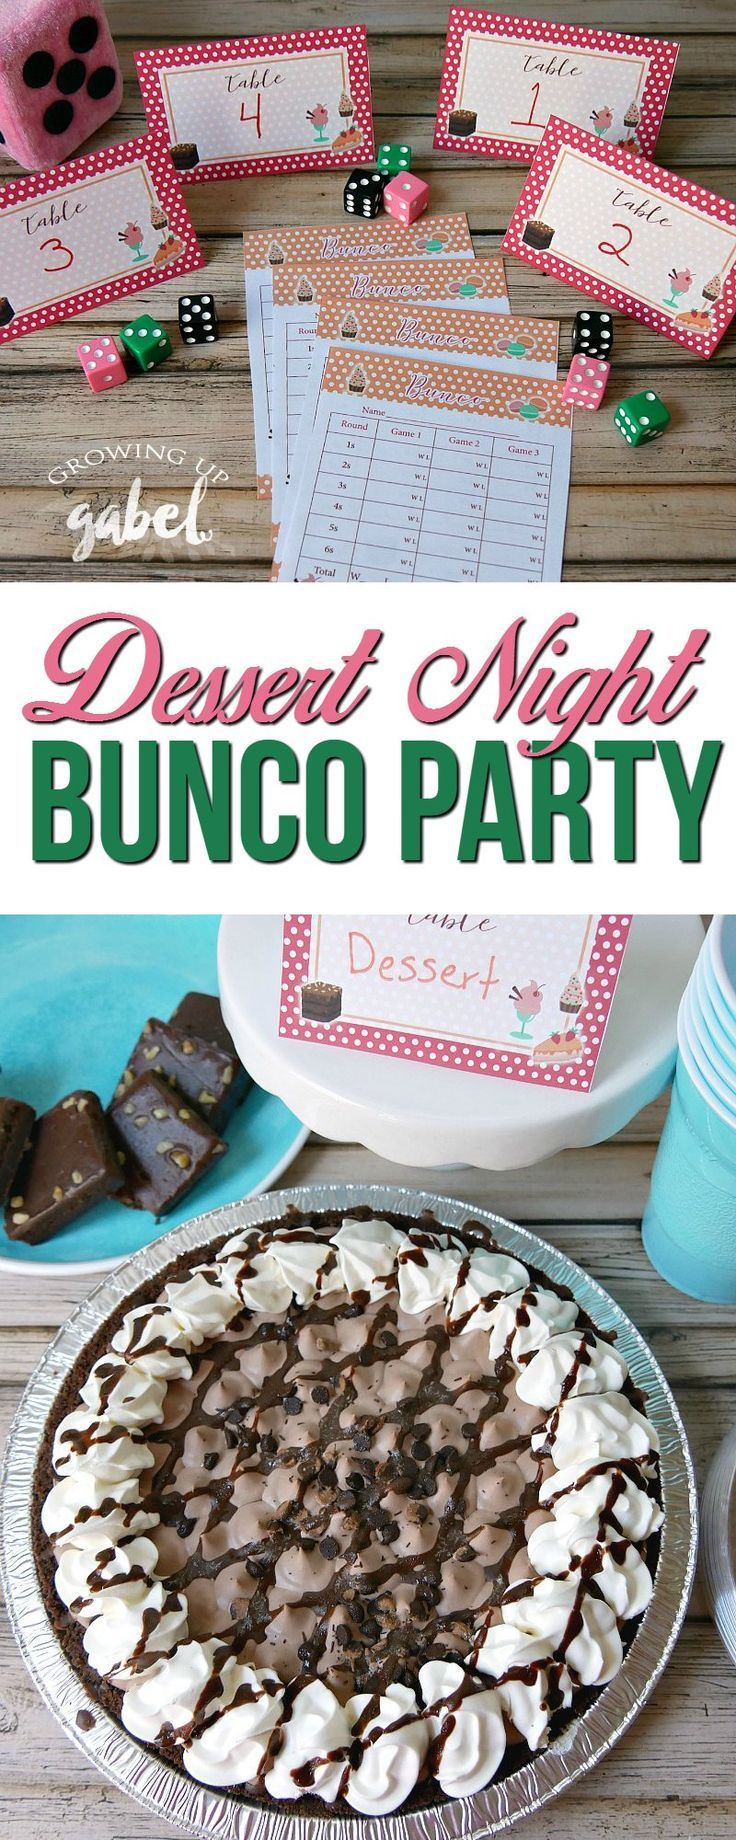 Throw a Bunco Party with FREE printable Bunco sheets & table numbers!